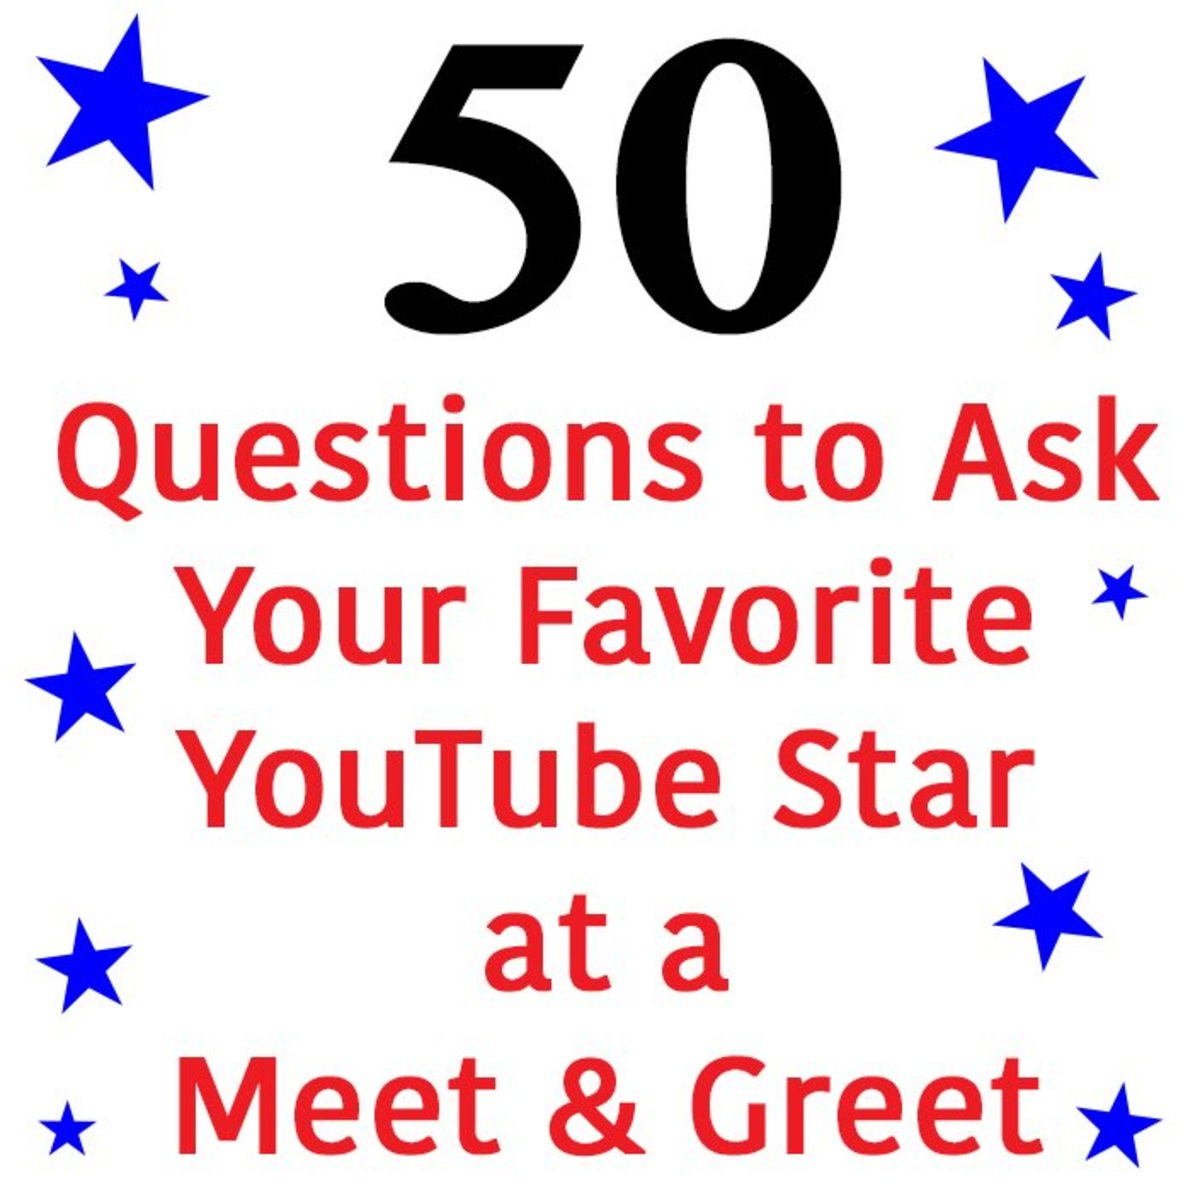 50 Questions to Ask Your Favorite YouTube Star at a Convention or Meet and Greet